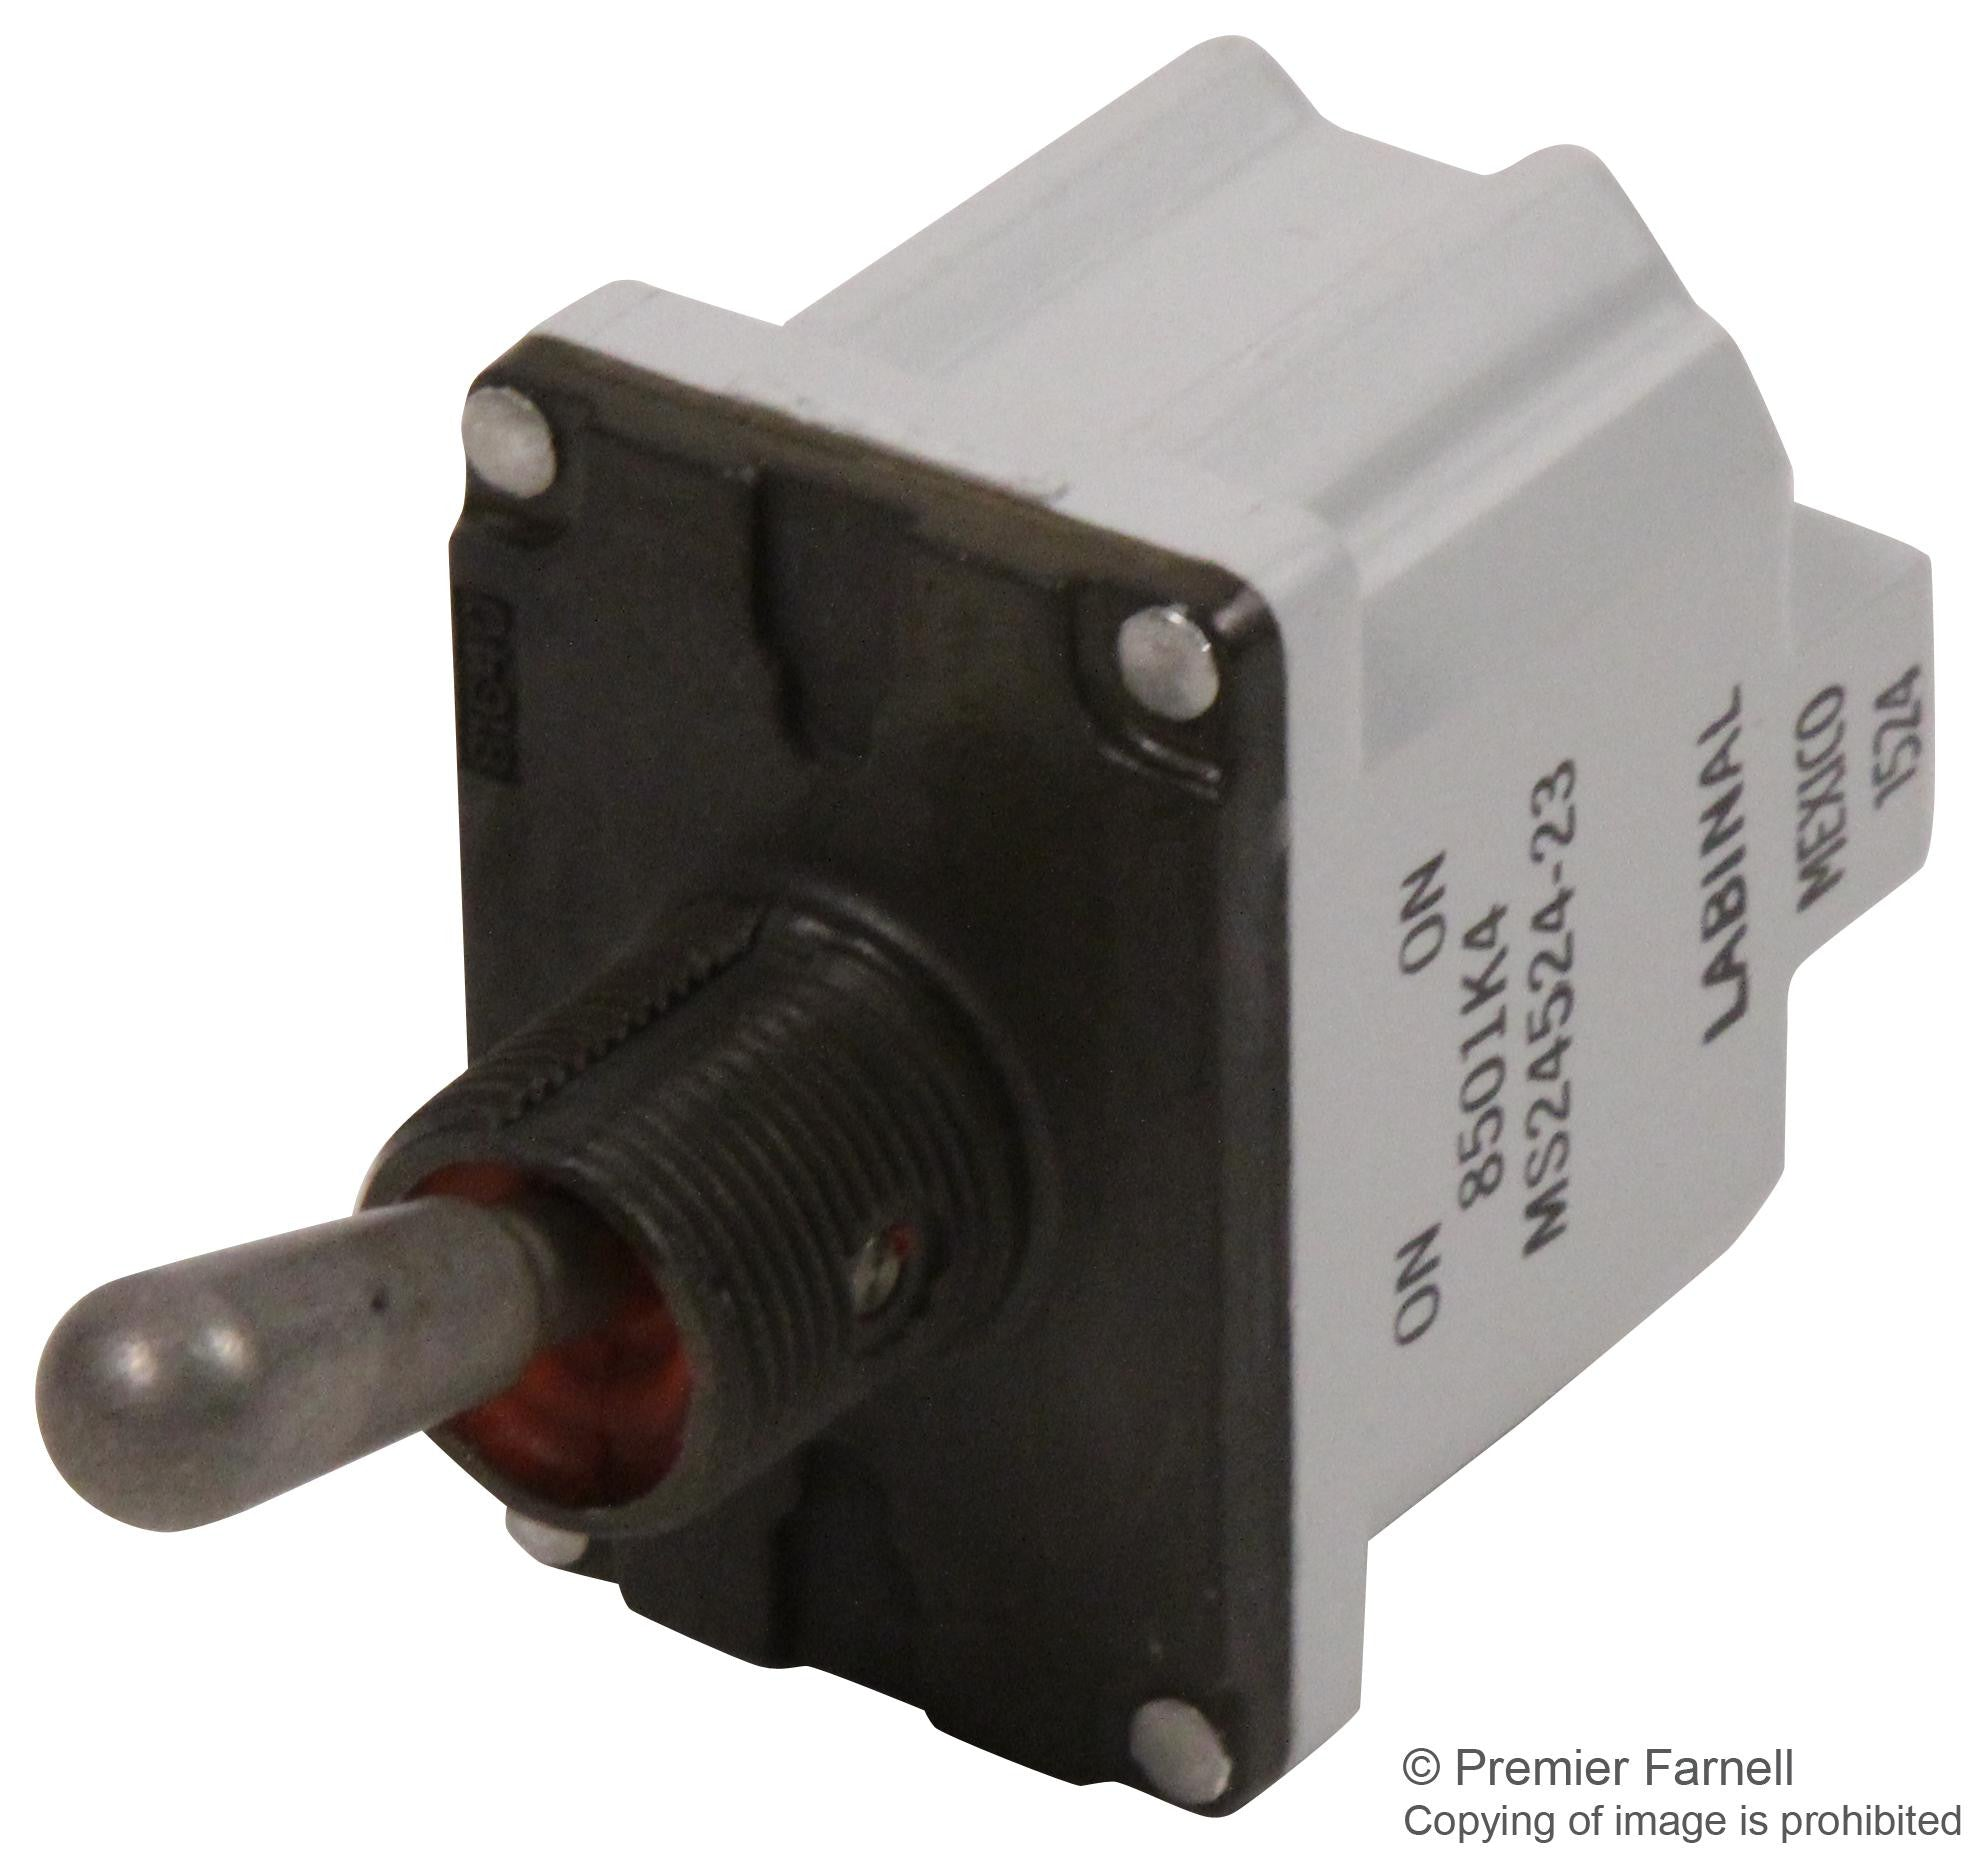 Buy SAFRAN ELECTRICAL AND POWER SWITCH, TOGGLE, DPST, 20A, 115V in ...